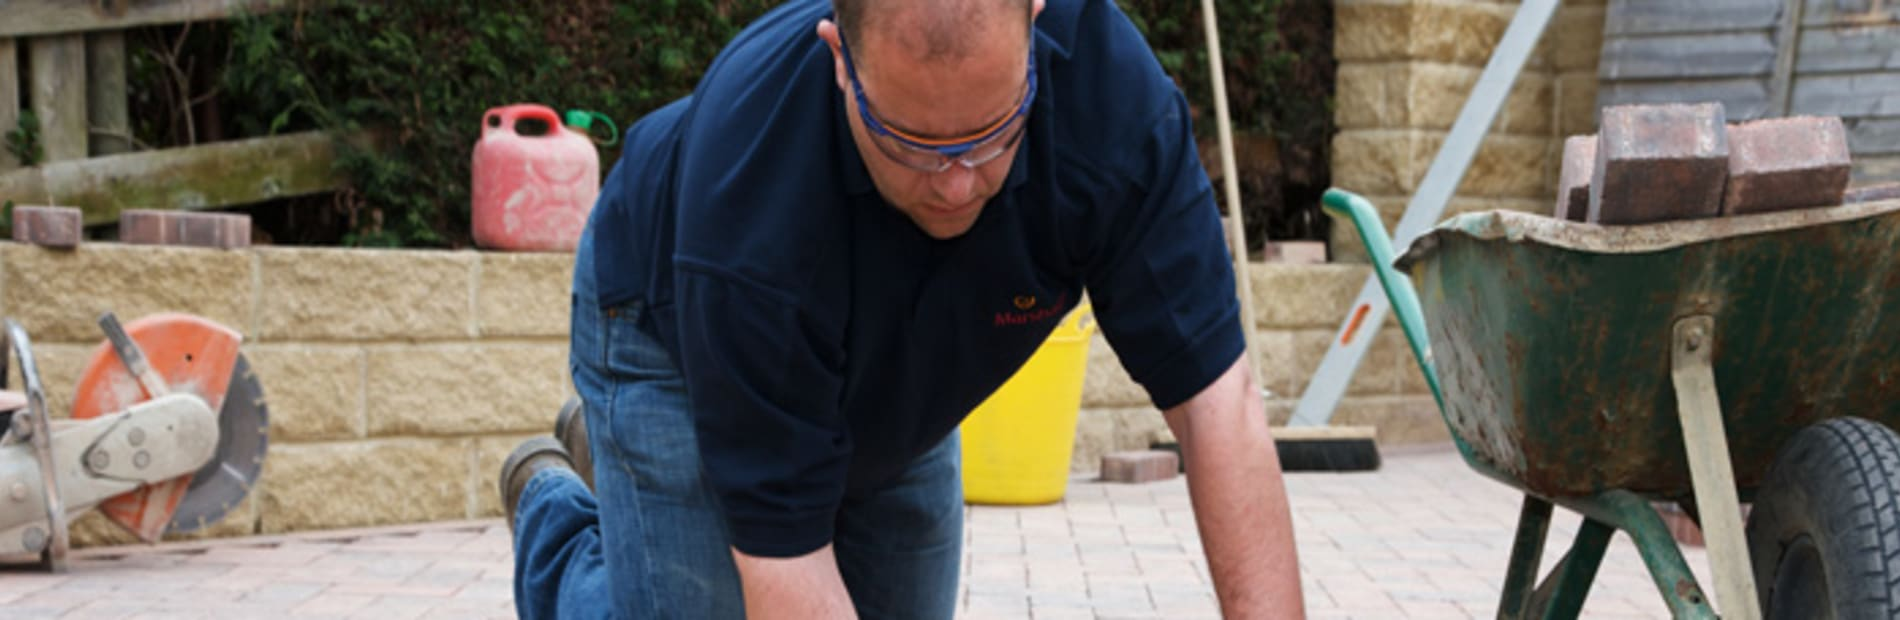 an installer laying block paving in a garden patio area.